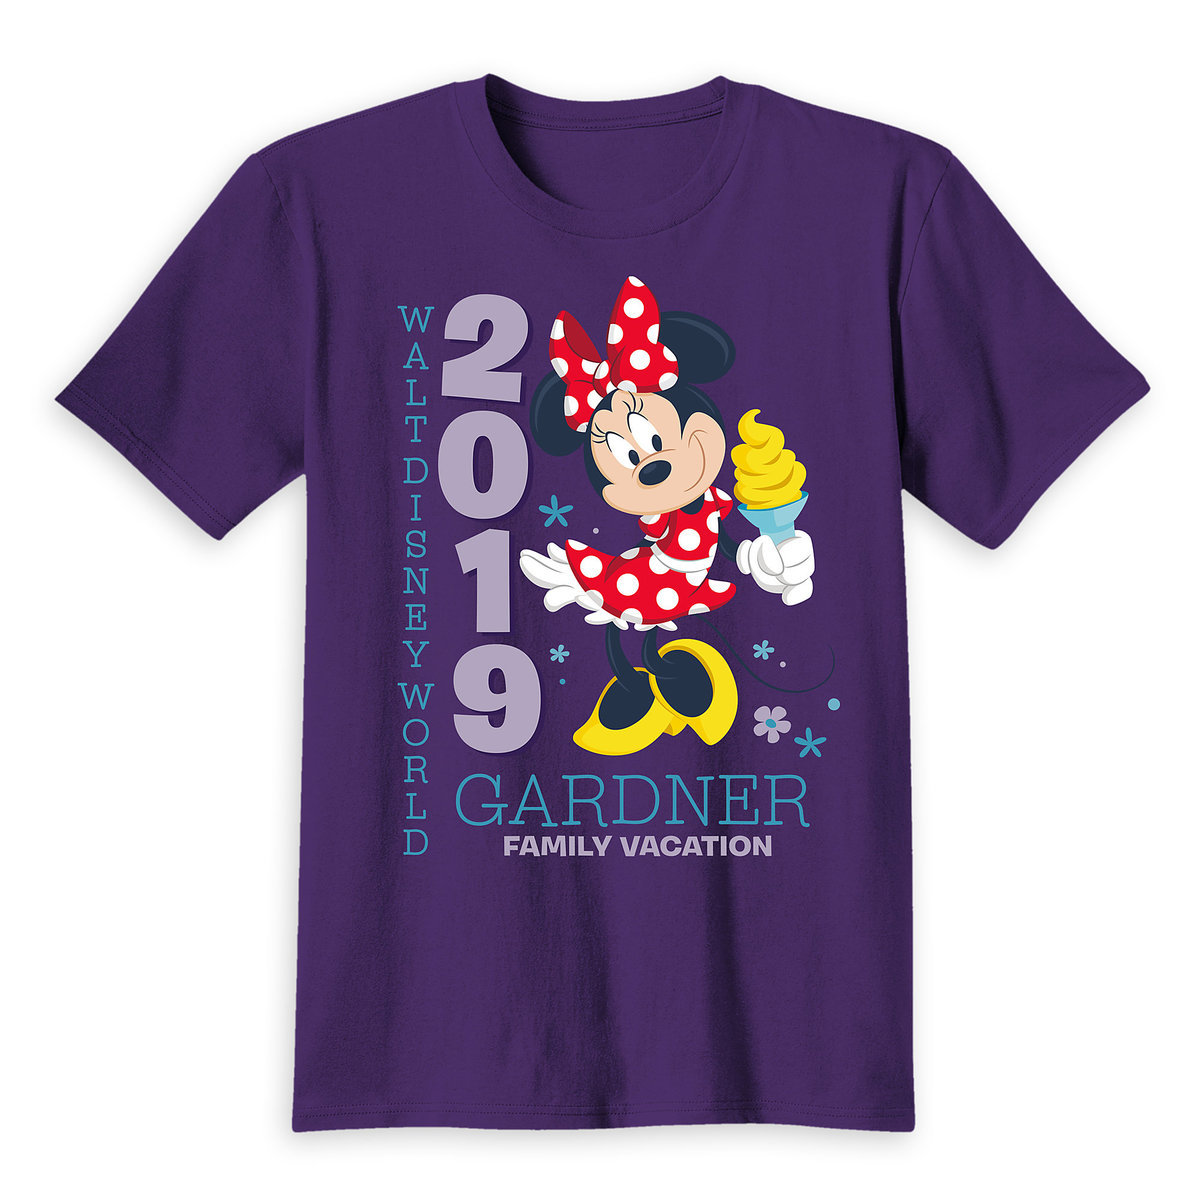 88fdeec9cac0 Product Image of Minnie Mouse Family Vacation T-Shirt for Kids - Walt Disney  World